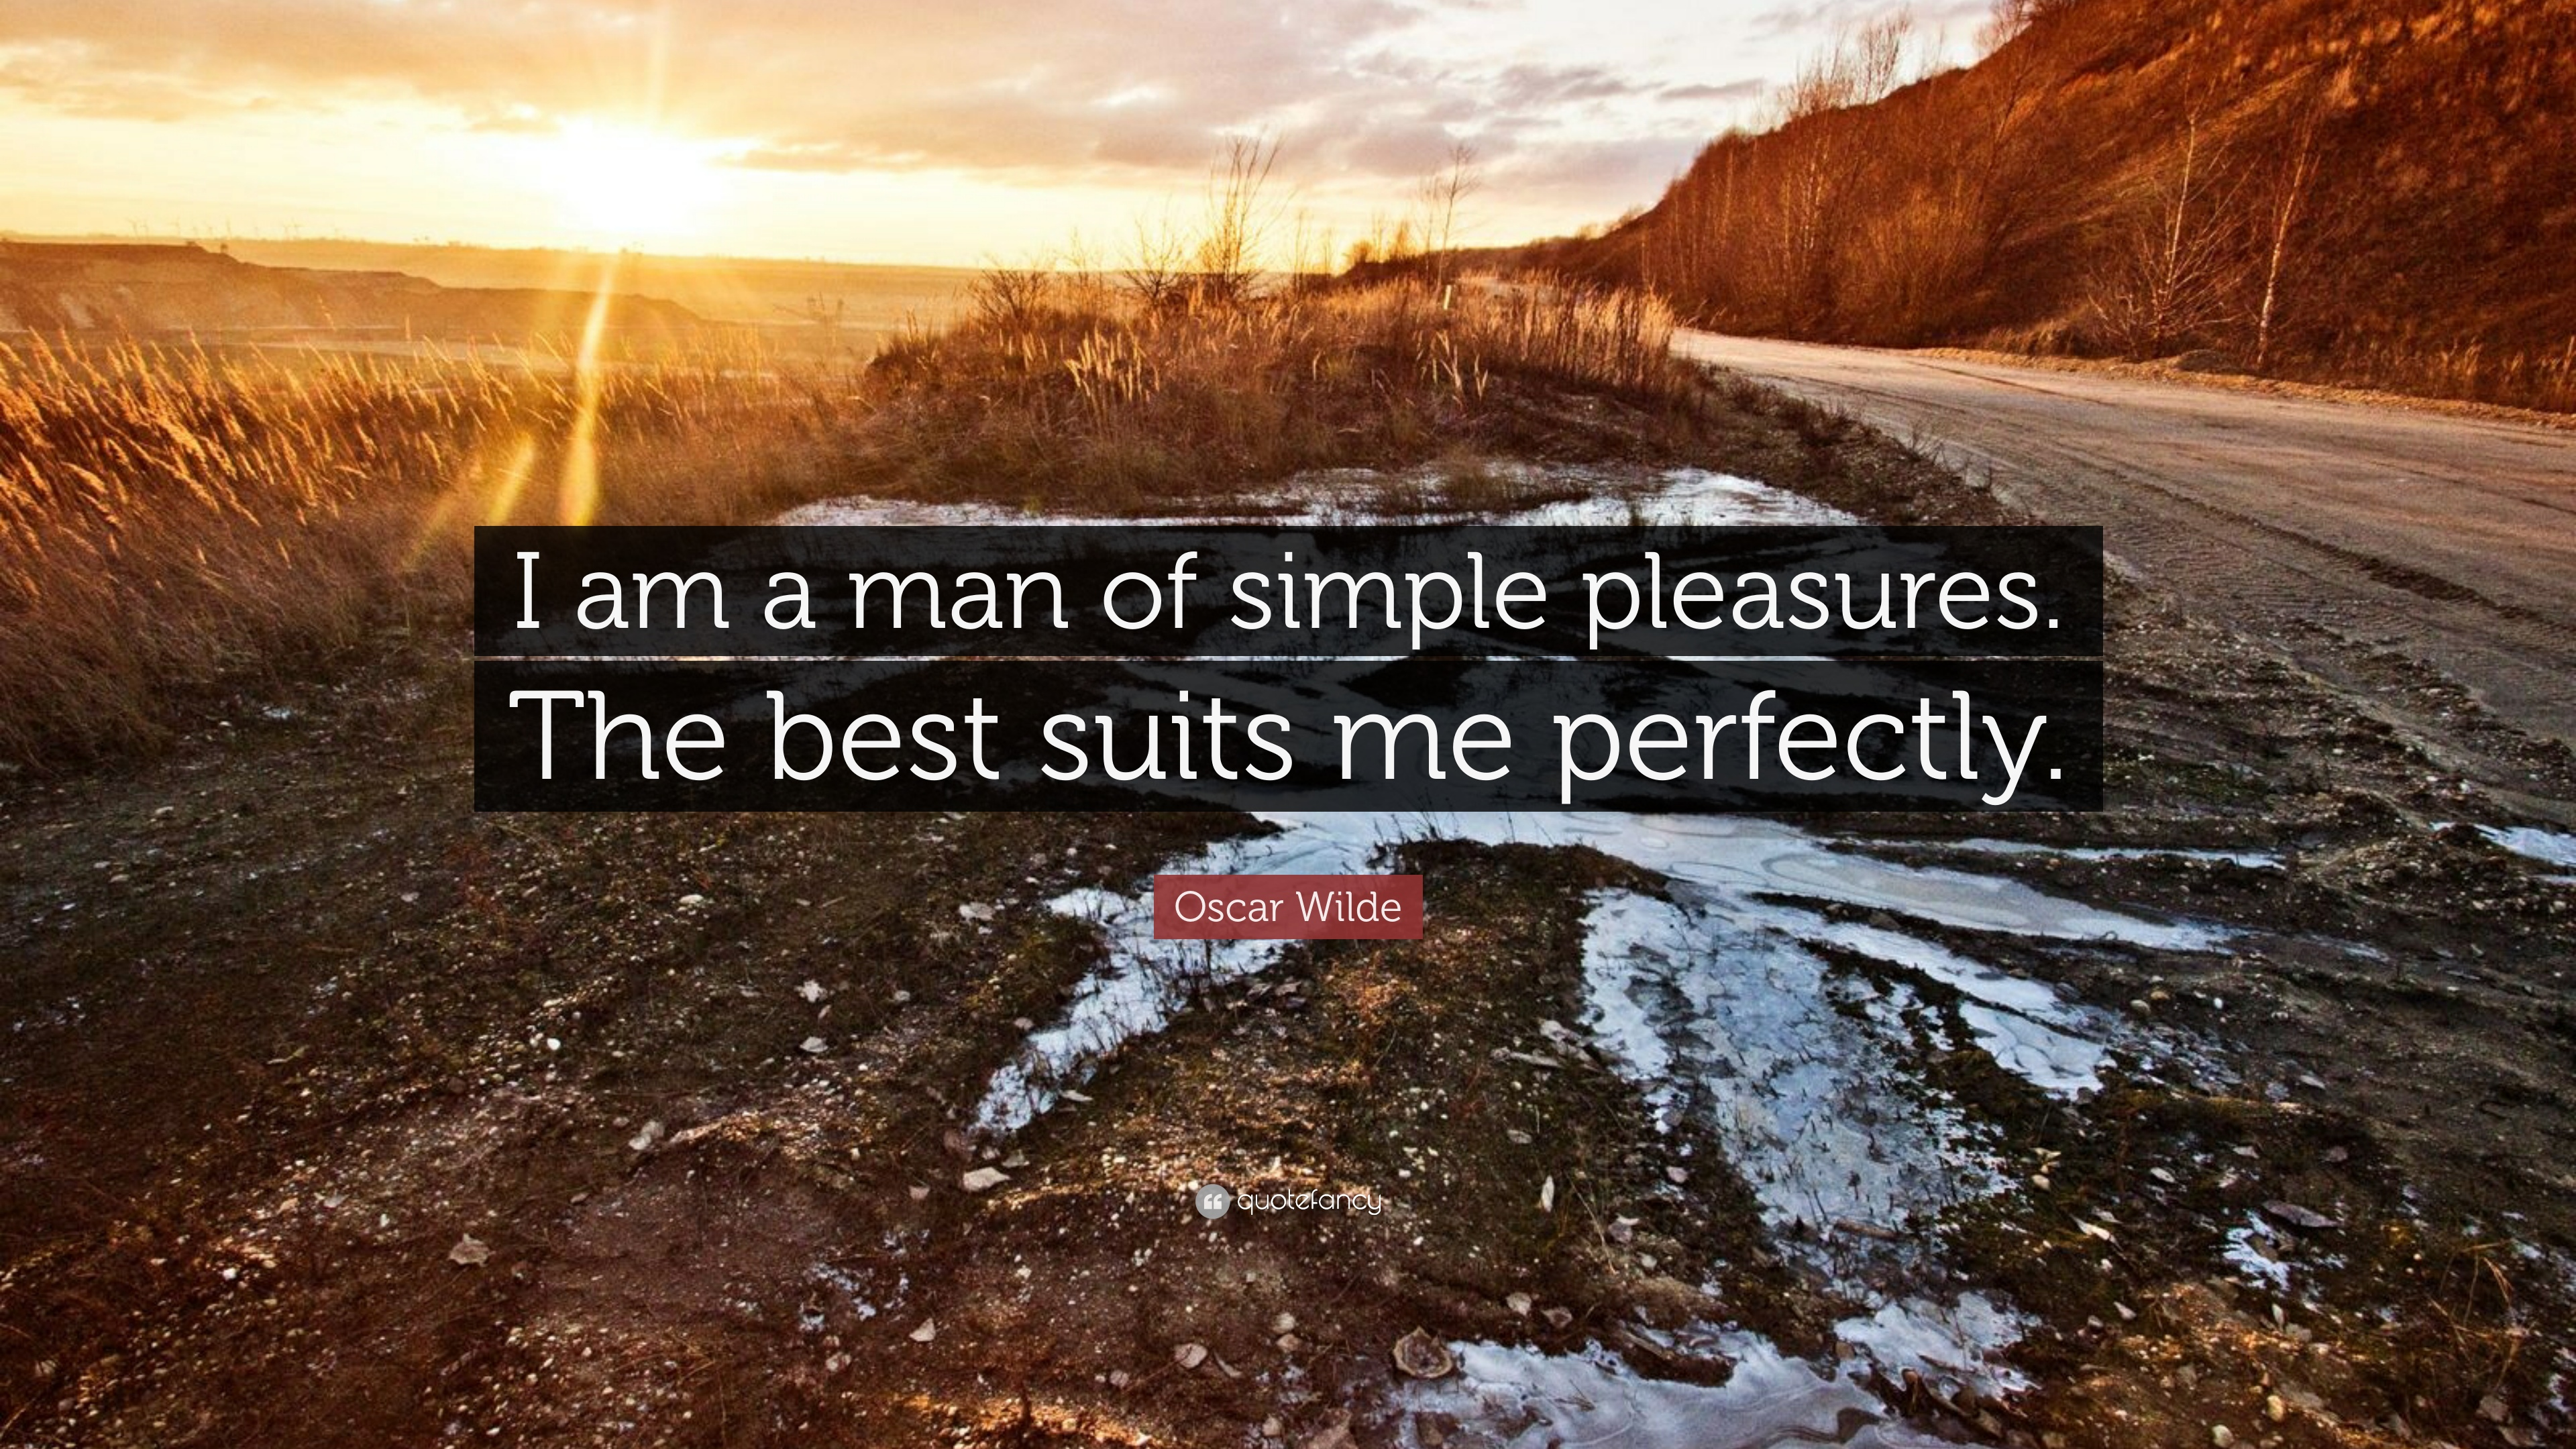 suits me perfectly